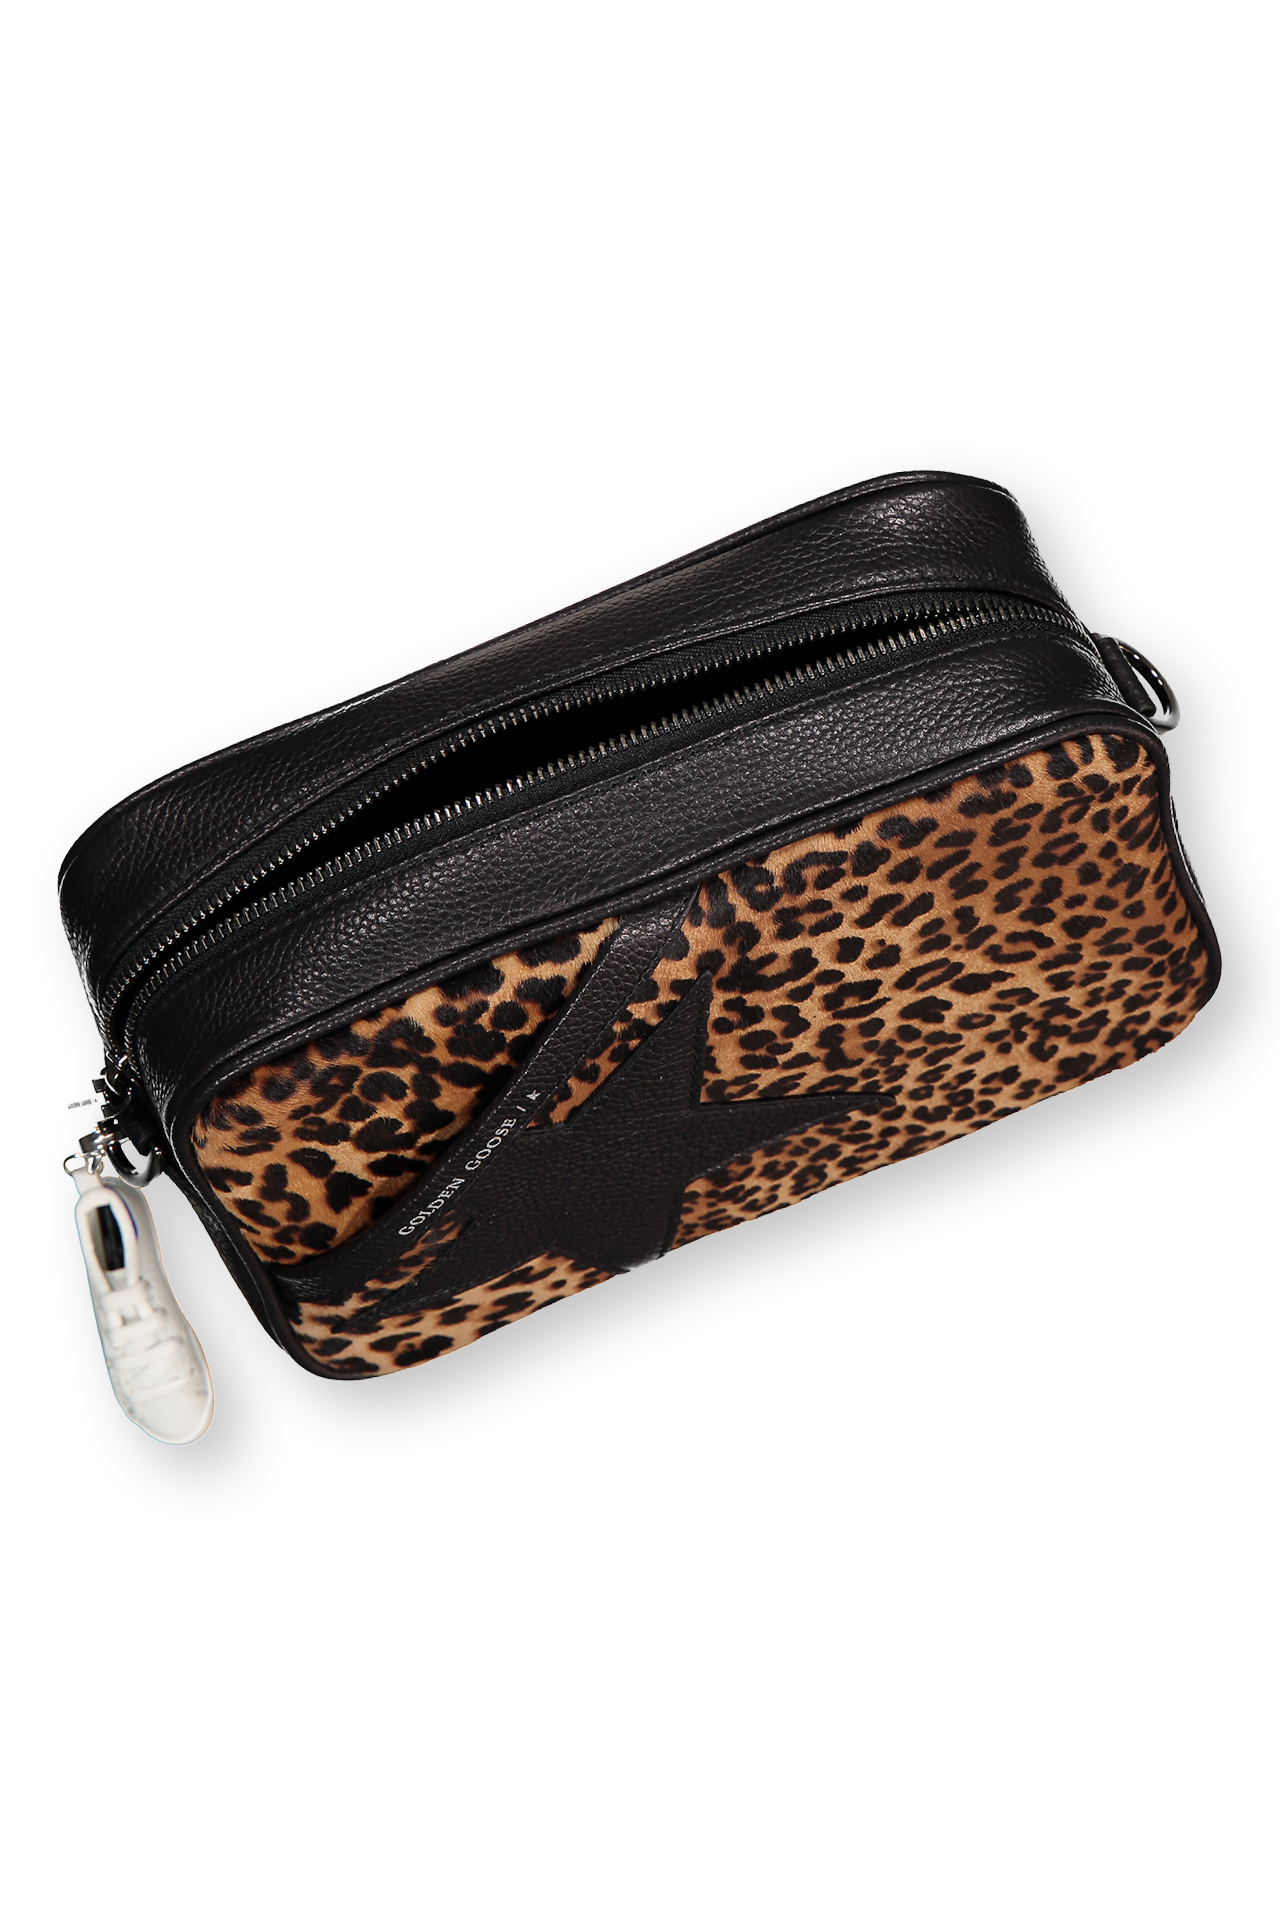 Zipper Detail Image of Golden Goose Women's Star Bag Leopard